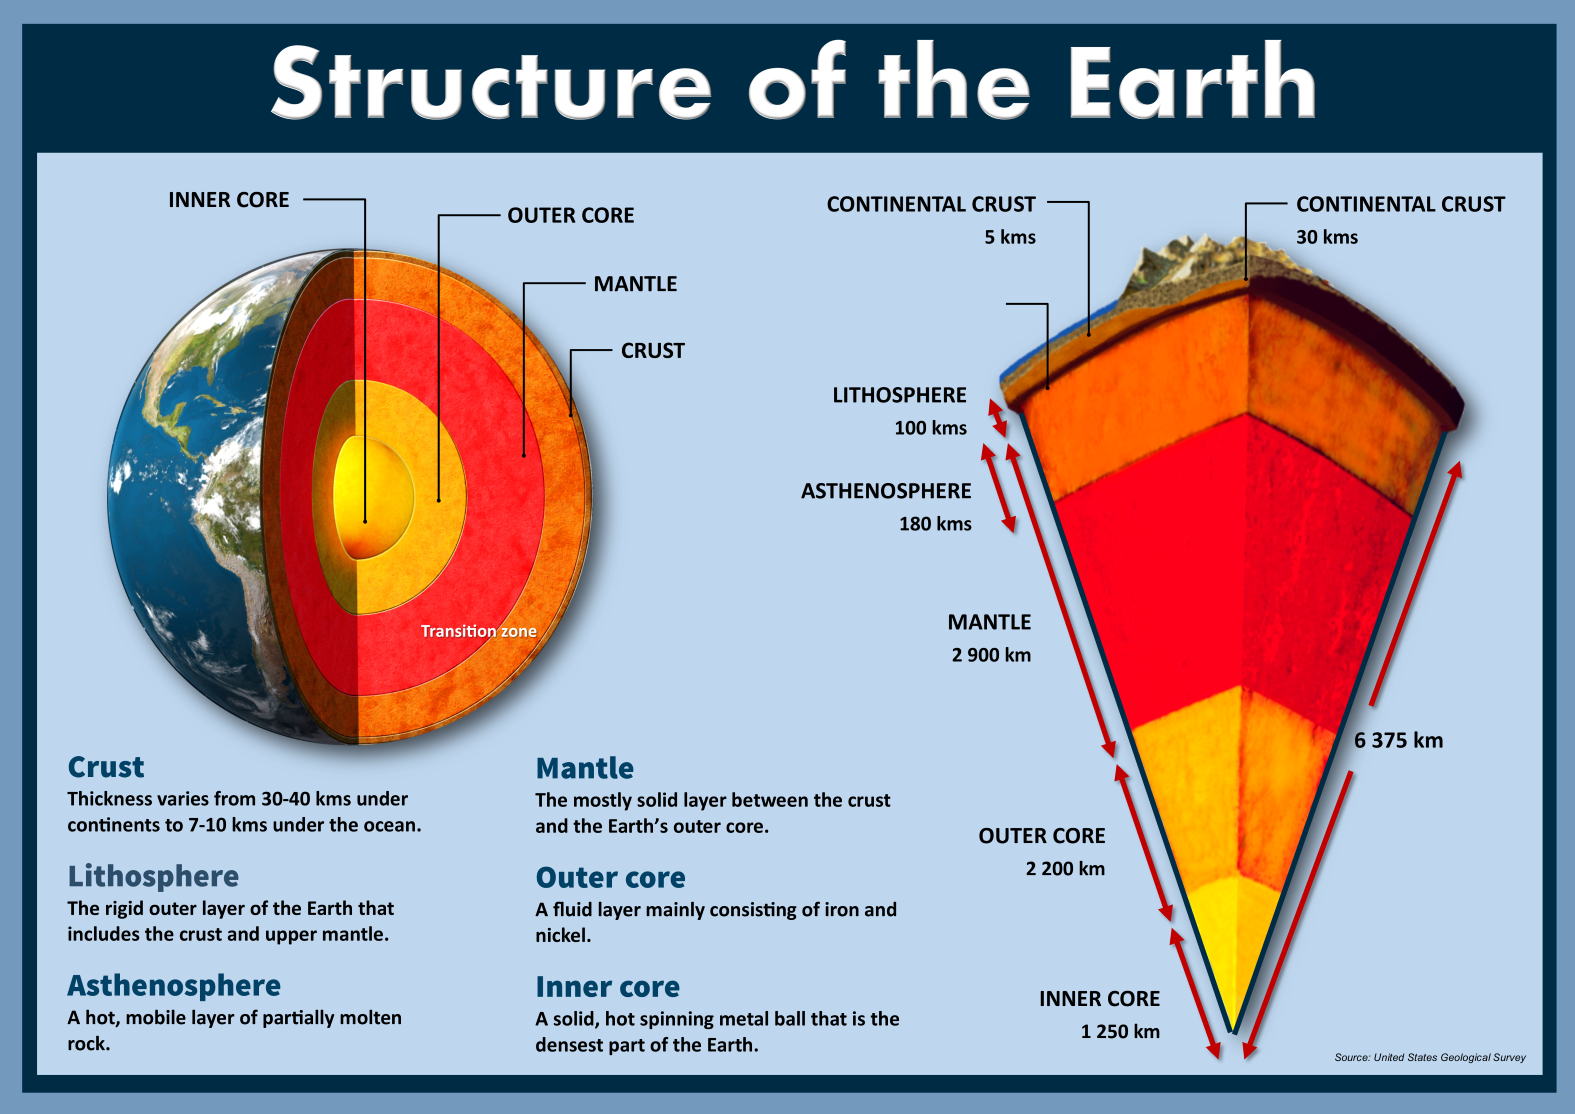 medium resolution of Plate Tectonics: Structure of the Earth   Earth science lessons